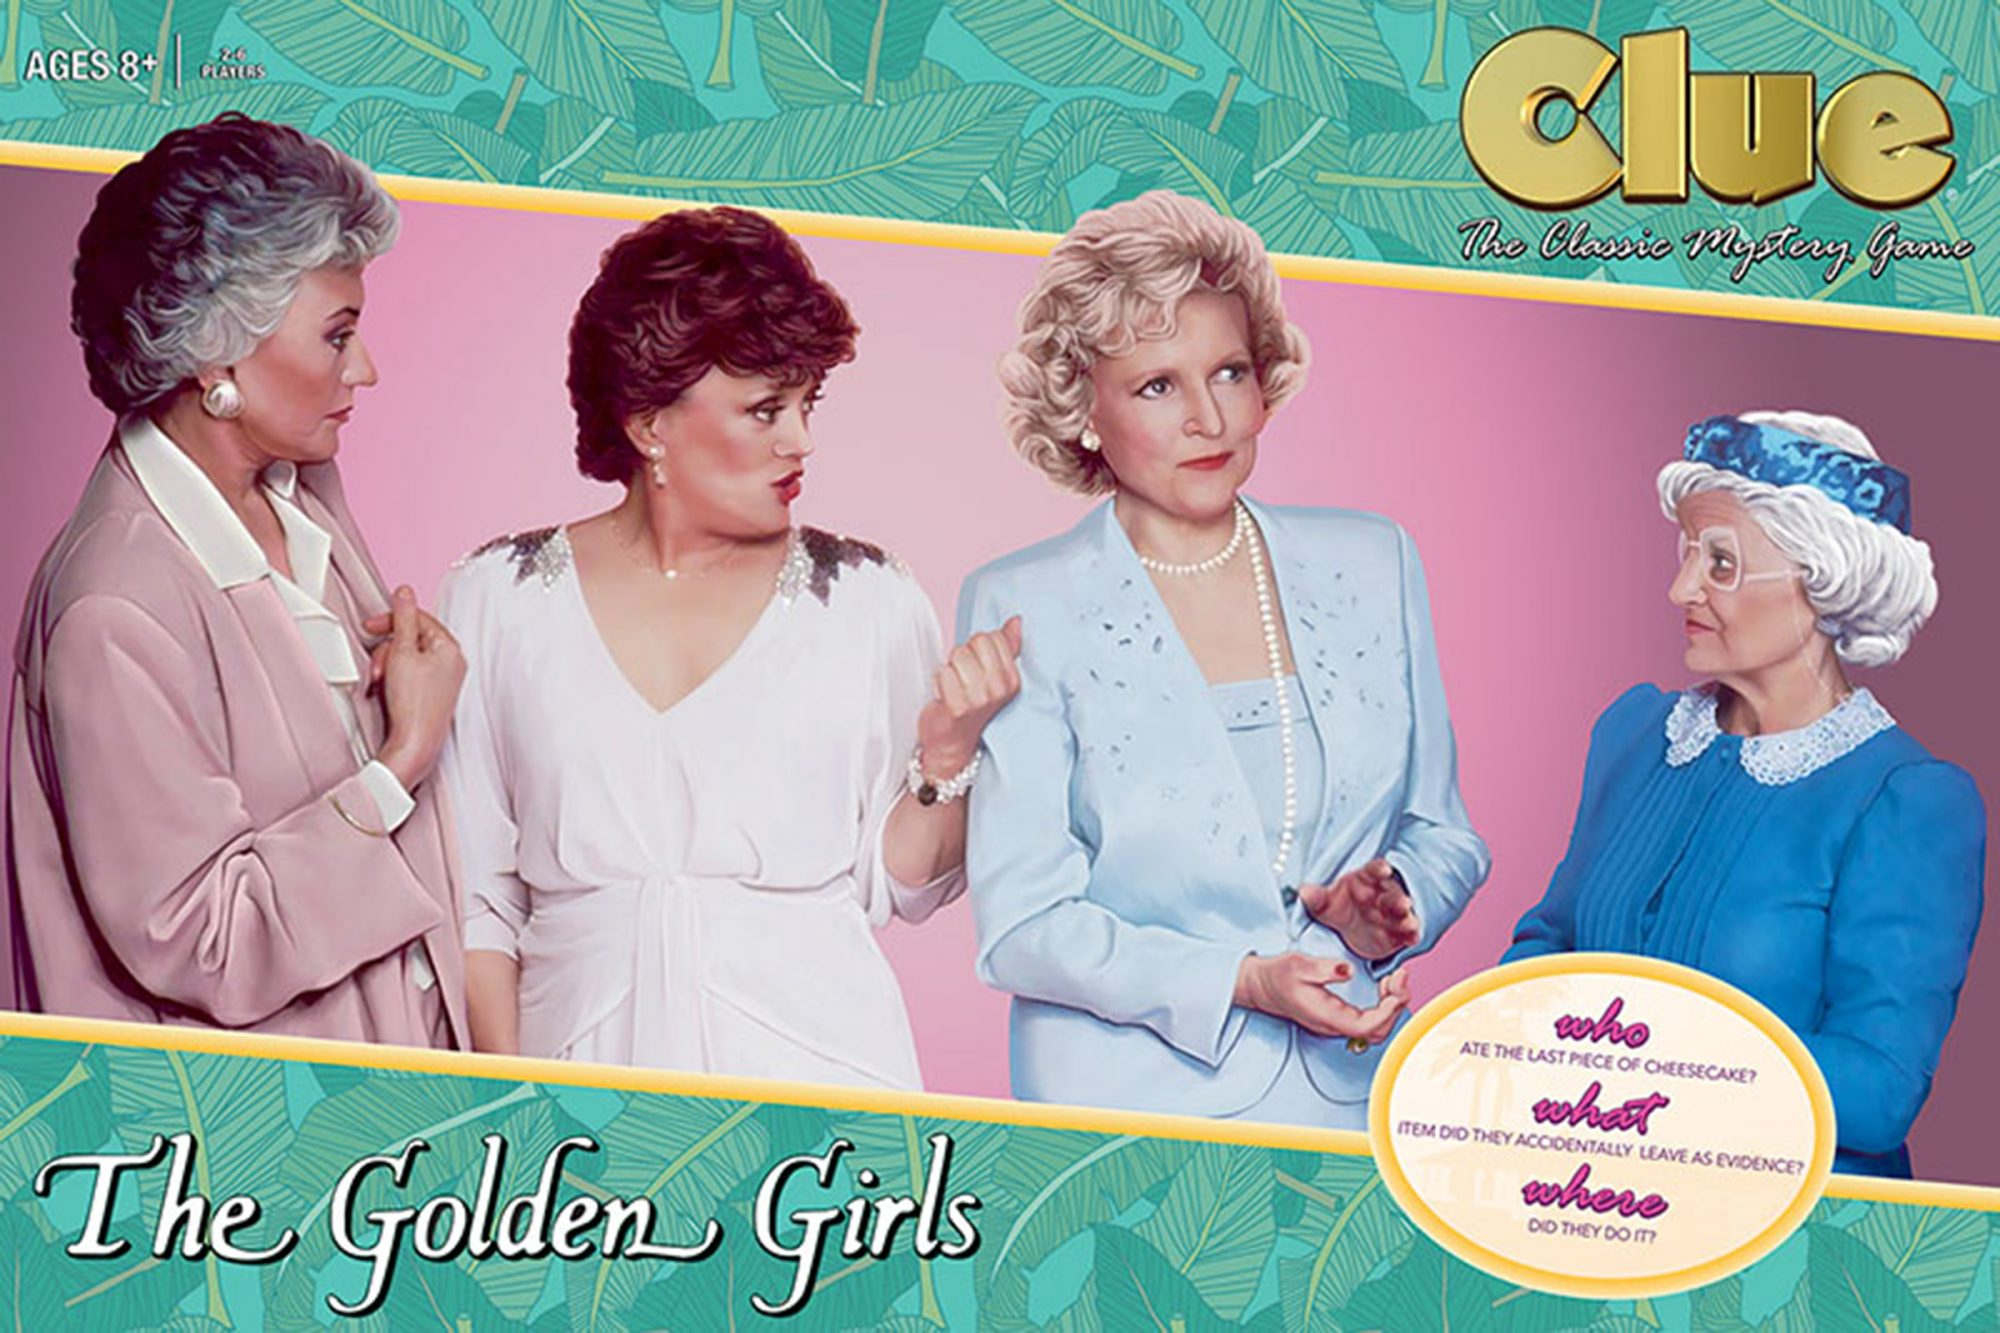 'Golden Girls' Clue: Solve the mystery of the missing cheesecake in new board game